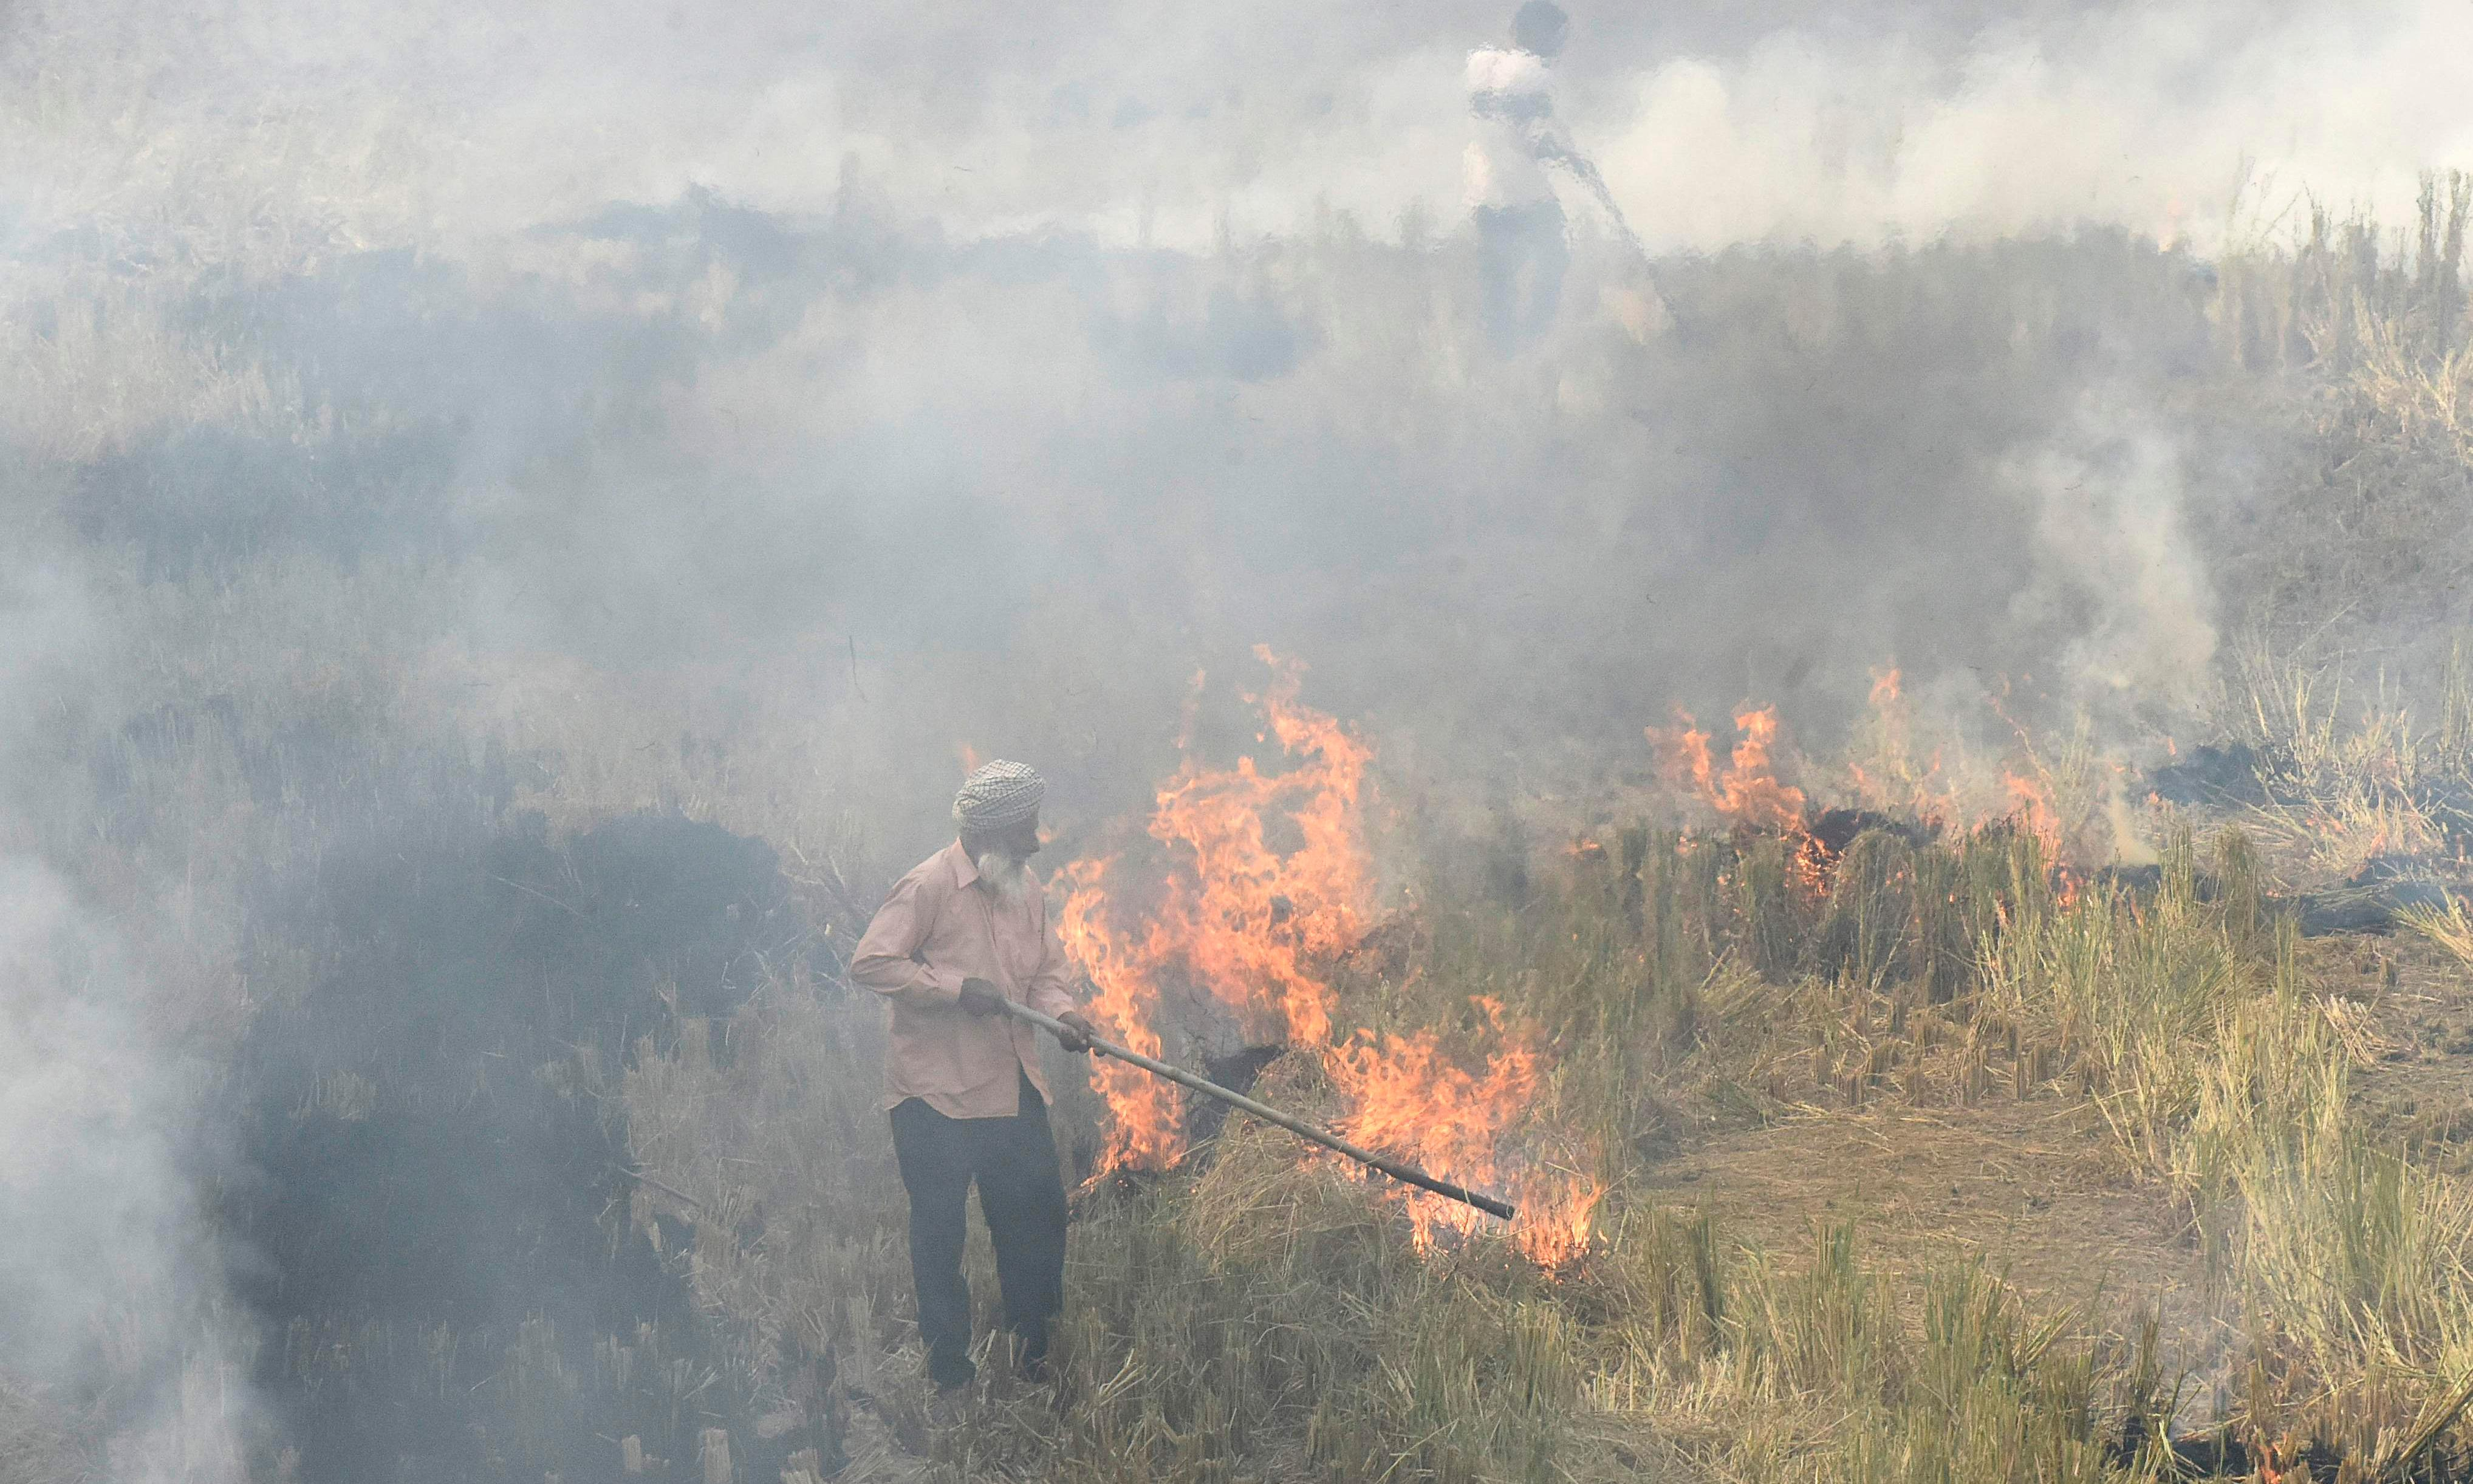 Delhi's smog blamed on crop fires – but farmers say they have little choice